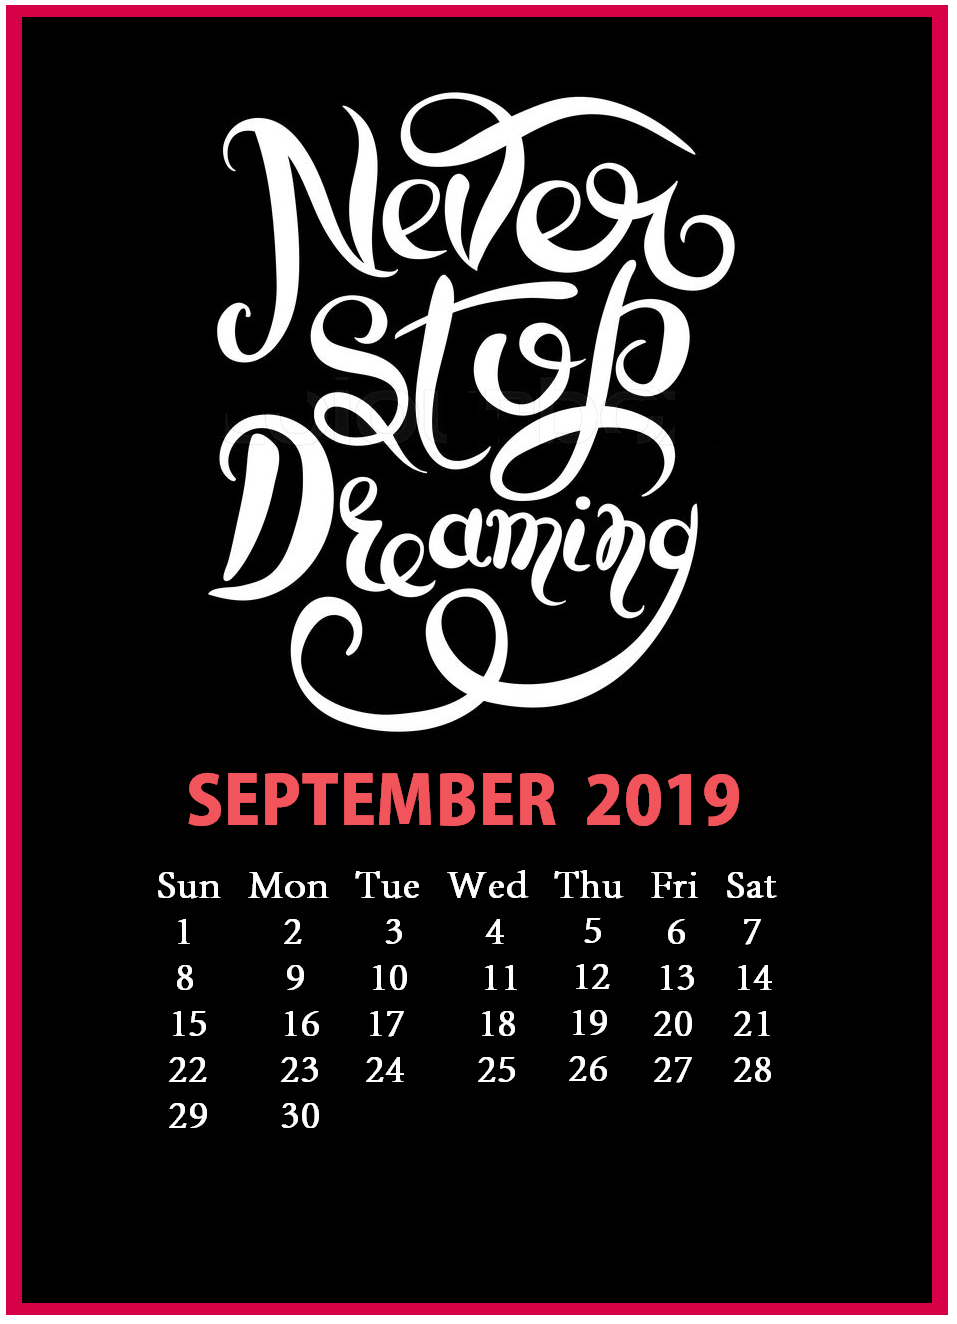 Inspirational September 2019 Calendar With Quotes